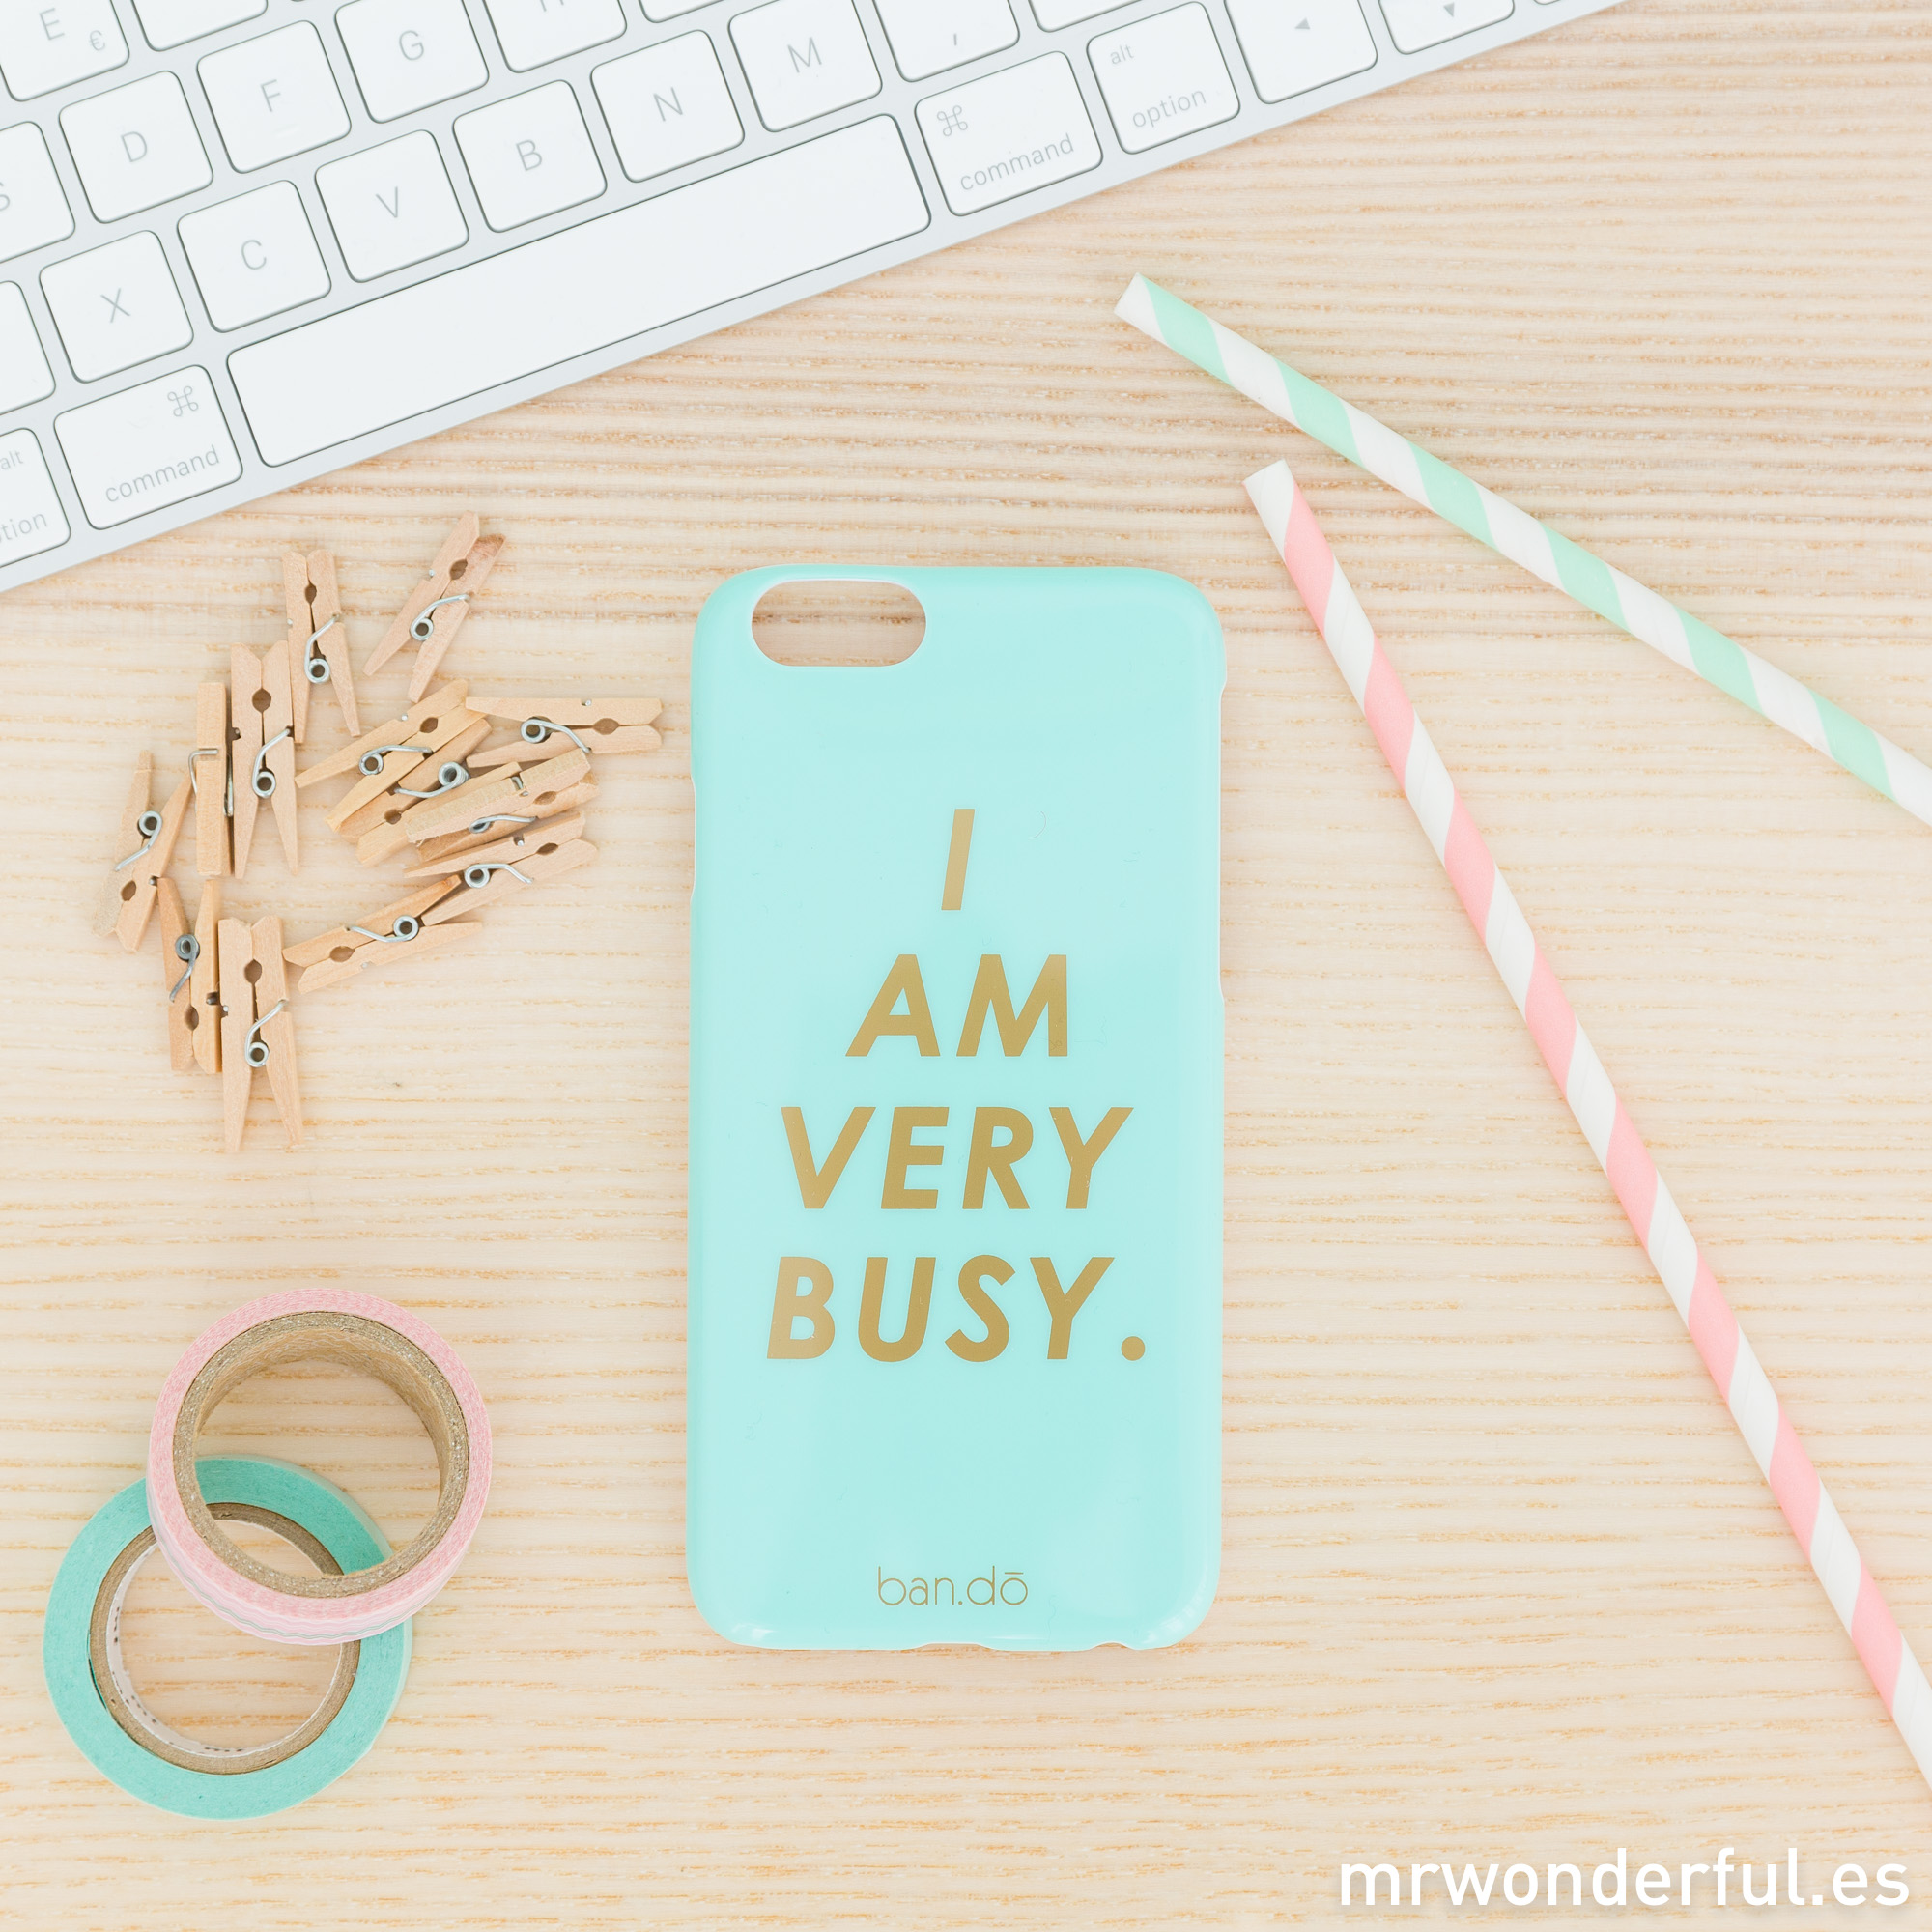 mrwonderful_PRA02815_Carcasa-para-iPhone-6-I-am-very-busy-9